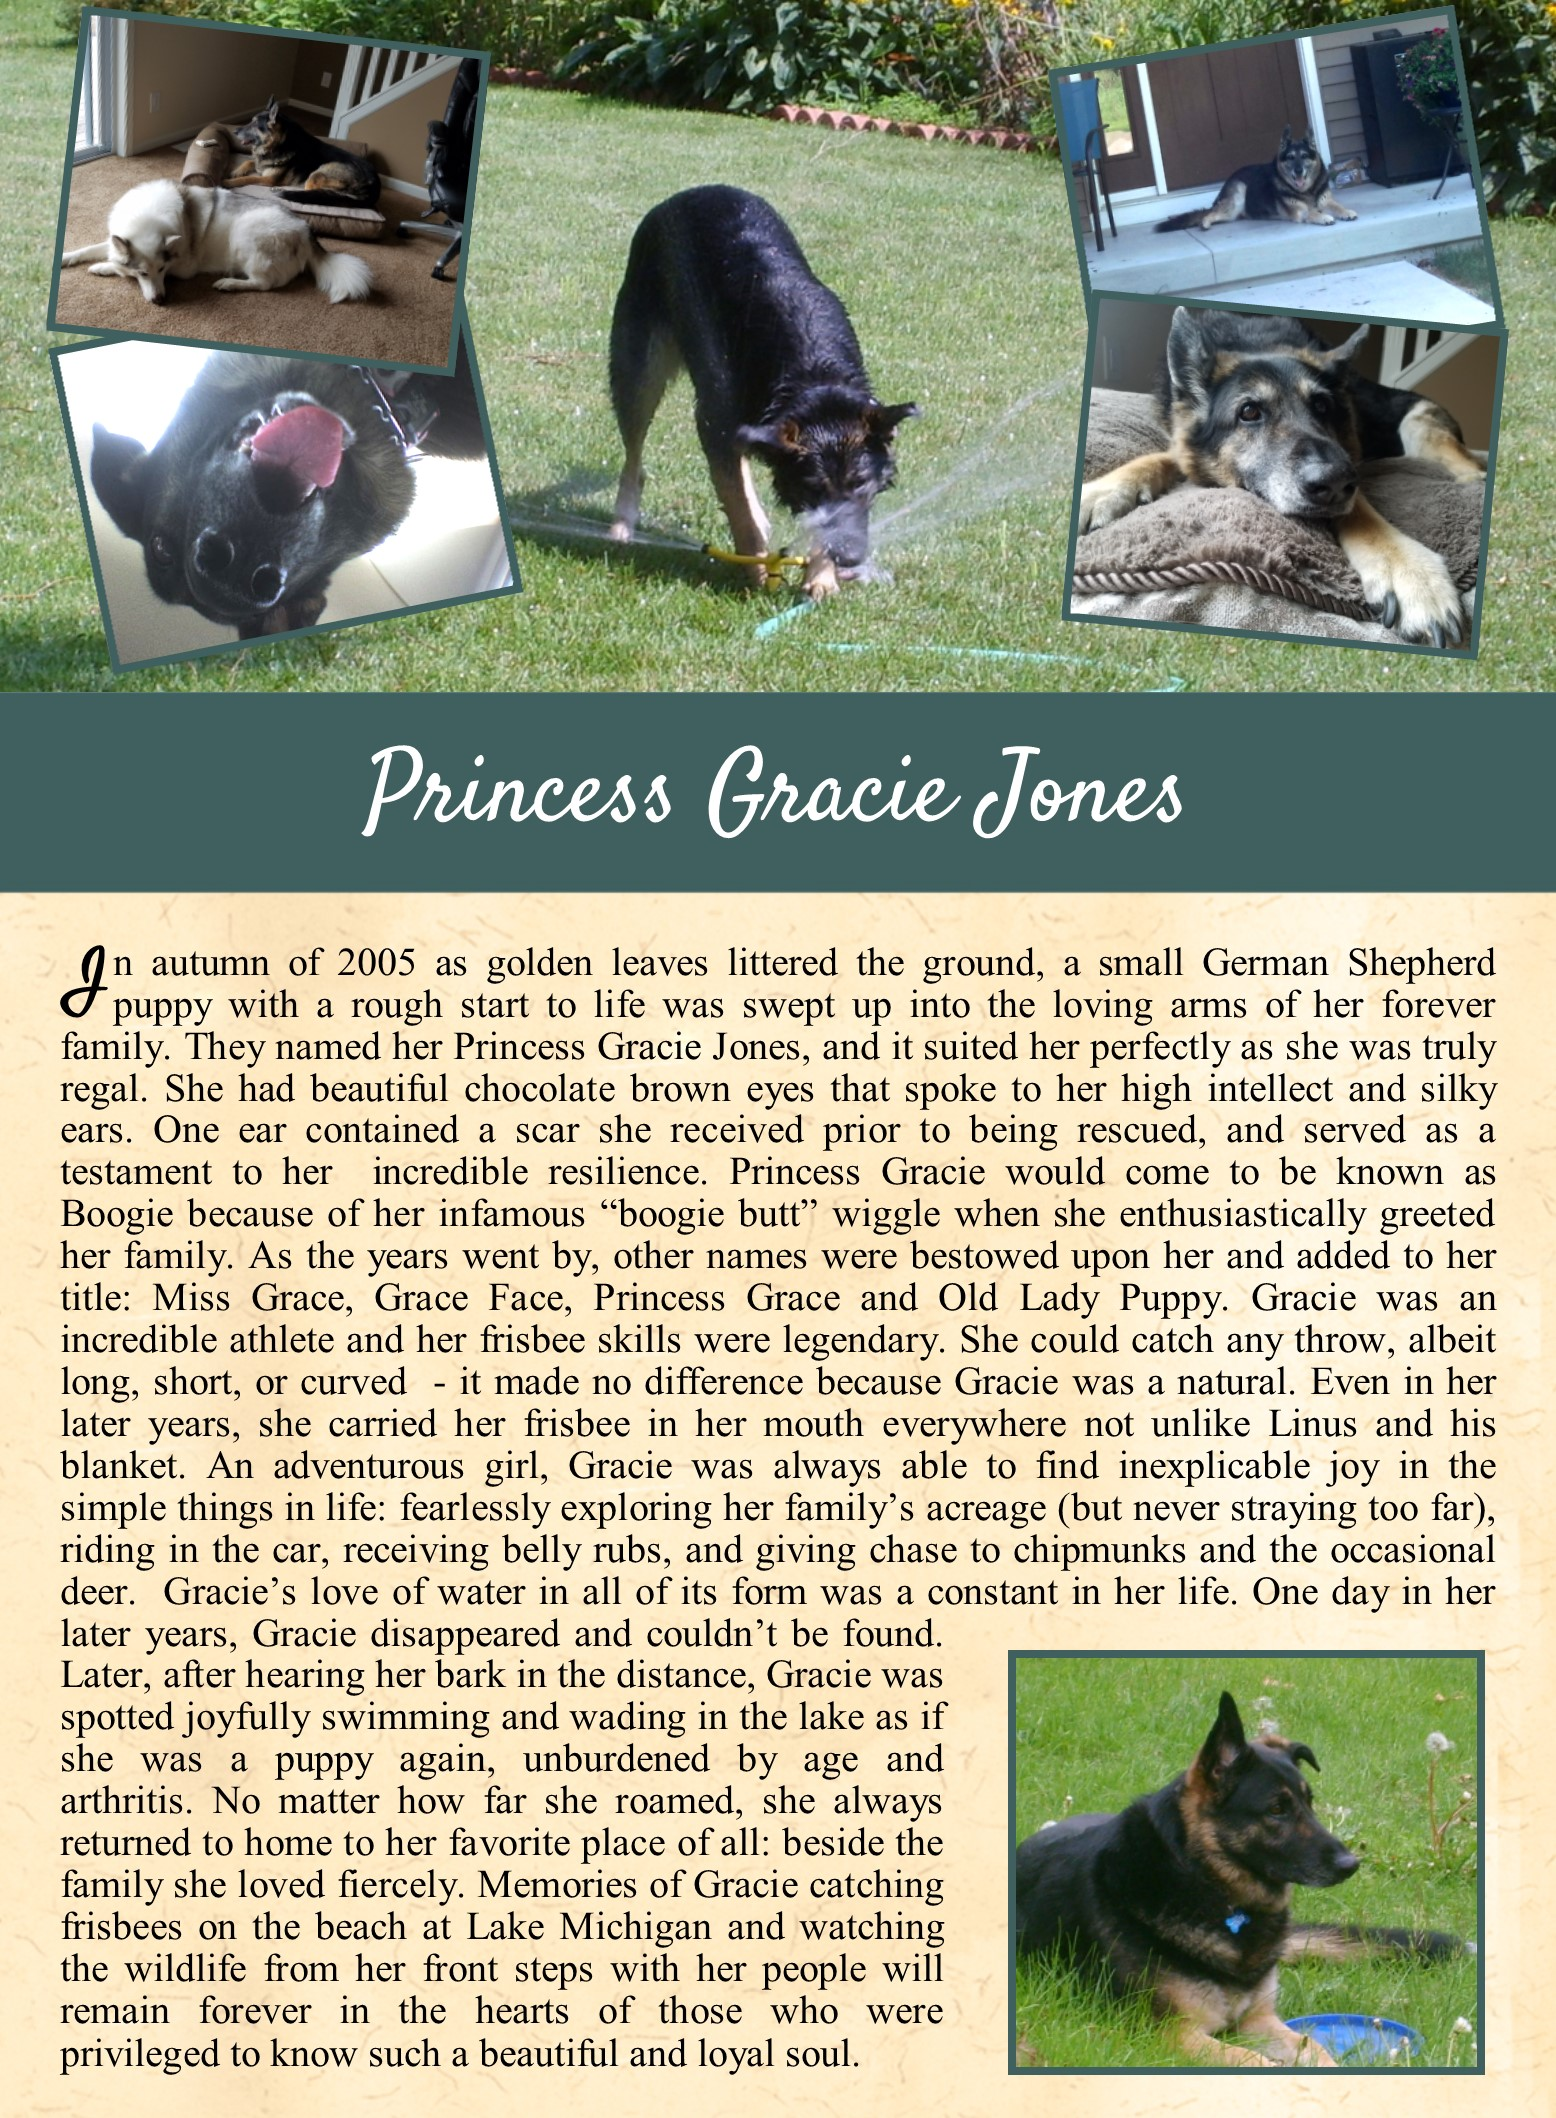 Princess Gracie Jones